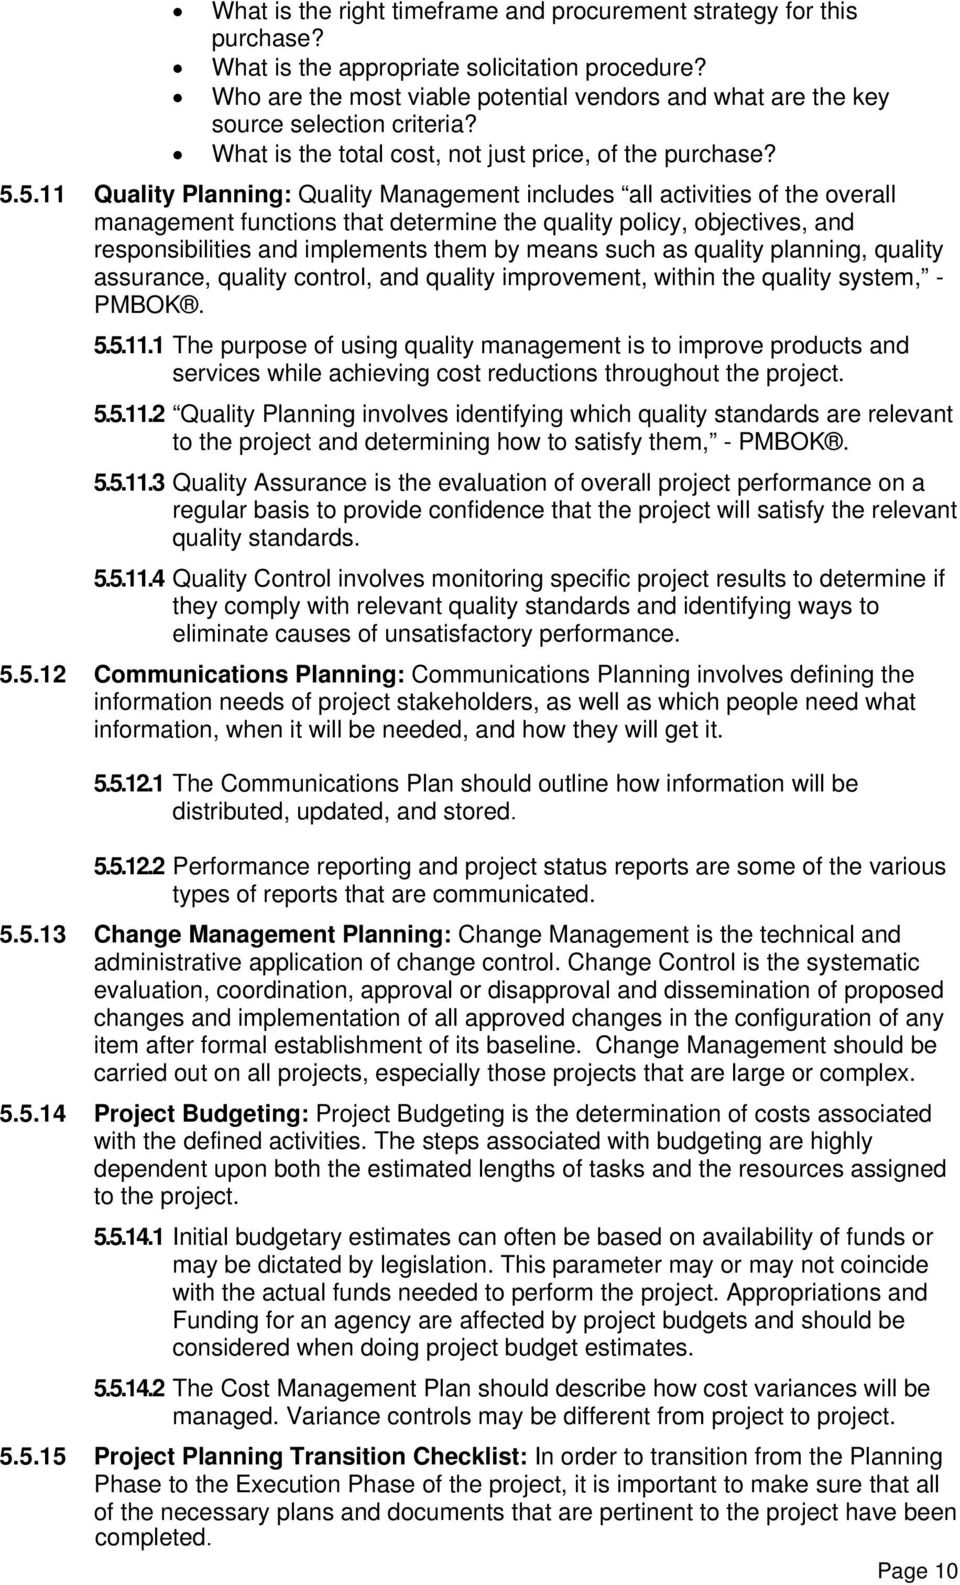 5.11 Quality Planning: Quality Management includes all activities of the overall management functions that determine the quality policy, objectives, and responsibilities and implements them by means